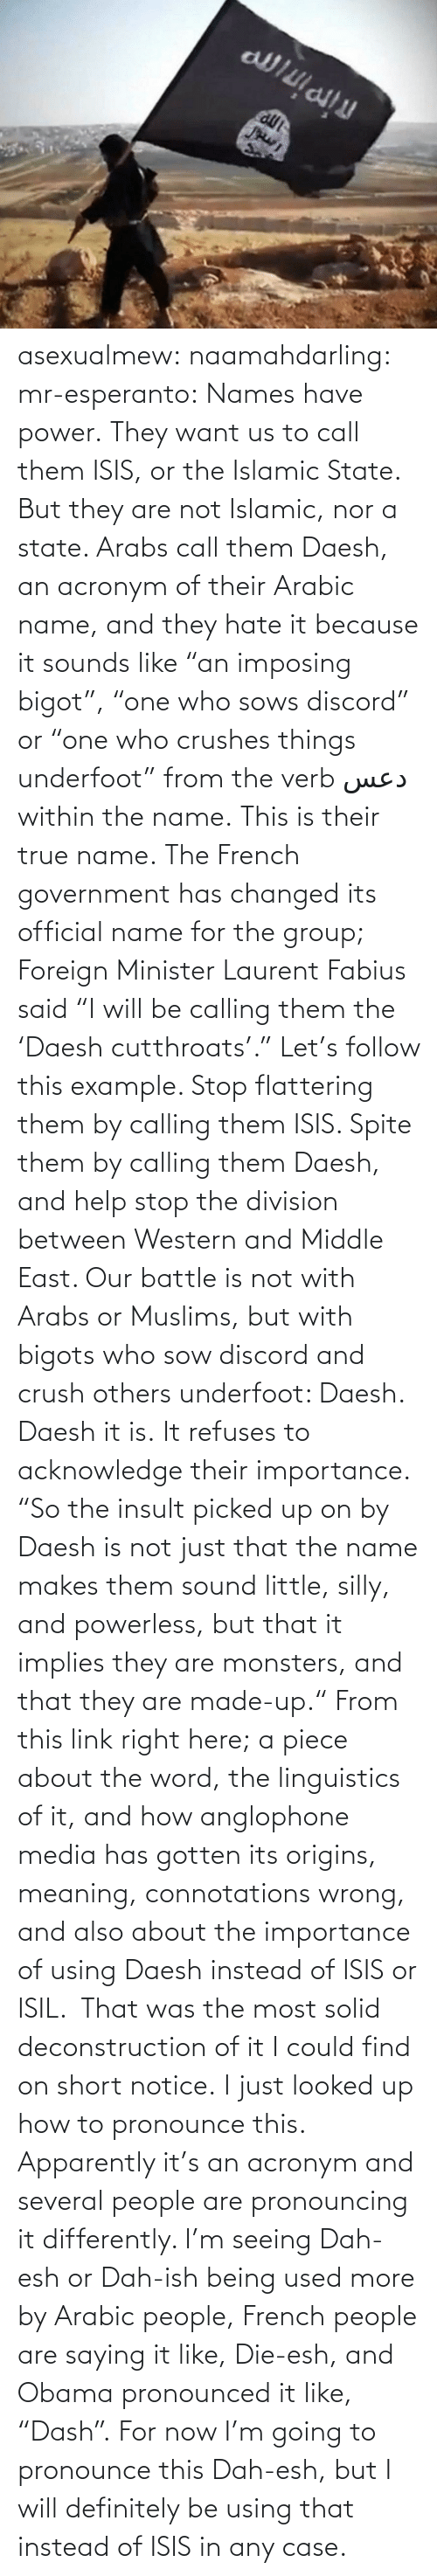 """Imposing: asexualmew:  naamahdarling:  mr-esperanto:  Names have power.  They want us to call them ISIS, or the Islamic State.  But they are not Islamic, nor a state. Arabs call them Daesh, an acronym of their Arabic name, and they hate it because it sounds like """"an imposing bigot"""", """"one who sows discord"""" or """"one who crushes things underfoot"""" from the verb دعس within the name.  This is their true name.  The French government has changed its official name for the group; Foreign Minister Laurent Fabius said """"I will be calling them the 'Daesh cutthroats'.""""  Let's follow this example. Stop flattering them by calling them ISIS.  Spite them by calling them Daesh, and help stop the division between Western and Middle East.  Our battle is not with Arabs or Muslims, but with bigots who sow discord and crush others underfoot: Daesh.  Daesh it is. It refuses to acknowledge their importance. """"So the insult picked up on by Daesh is not just that the name makes them sound little, silly, and powerless, but that it implies they are monsters, and that they are made-up."""" From this link right here;a piece about the word, the linguistics of it, and how anglophone media has gotten its origins, meaning, connotations wrong, and also about the importance of using Daesh instead of ISIS or ISIL. That was the most solid deconstruction of it I could find on short notice.  I just looked up how to pronounce this. Apparently it's an acronym and several people are pronouncing it differently.  I'm seeing Dah-esh or Dah-ish being used more by Arabic people, French people are saying it like, Die-esh, and Obama pronounced it like, """"Dash"""". For now I'm going to pronounce this Dah-esh, but I will definitely be using that instead of ISIS in any case."""